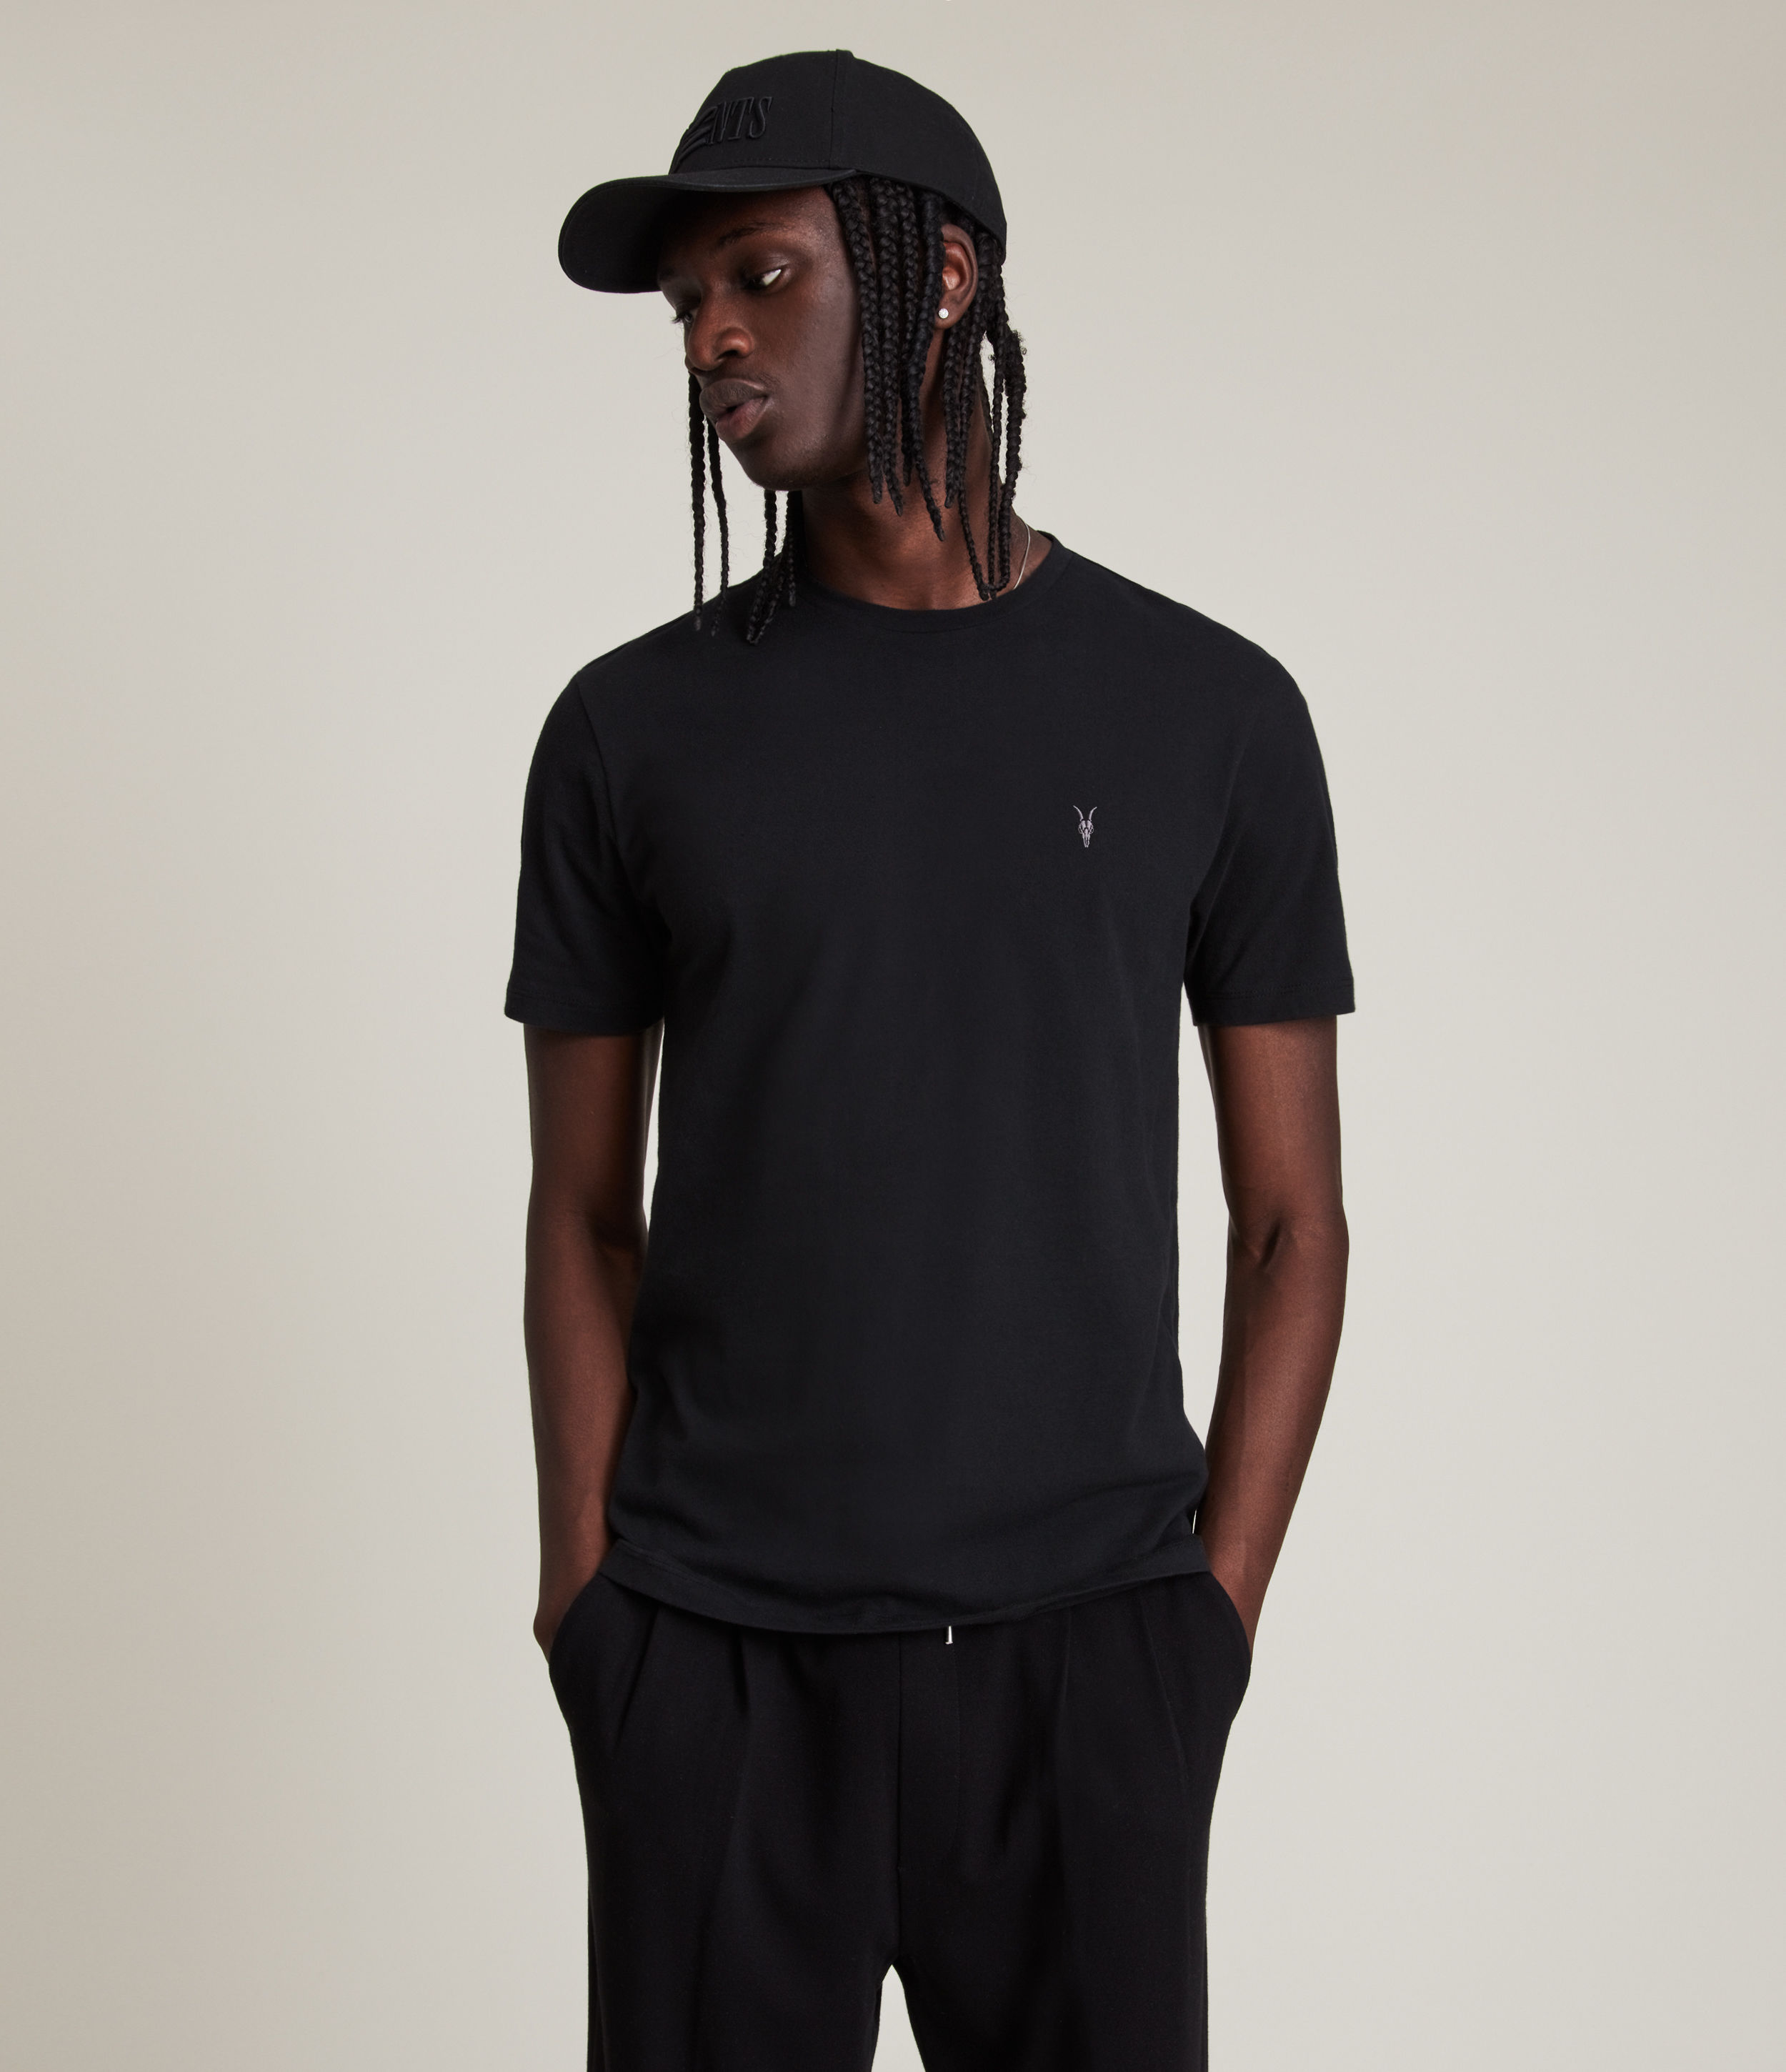 AllSaints Men's Cotton Regular Fit Brace Tonic Short Sleeve Crew T-Shirt, Black, Size: XXL